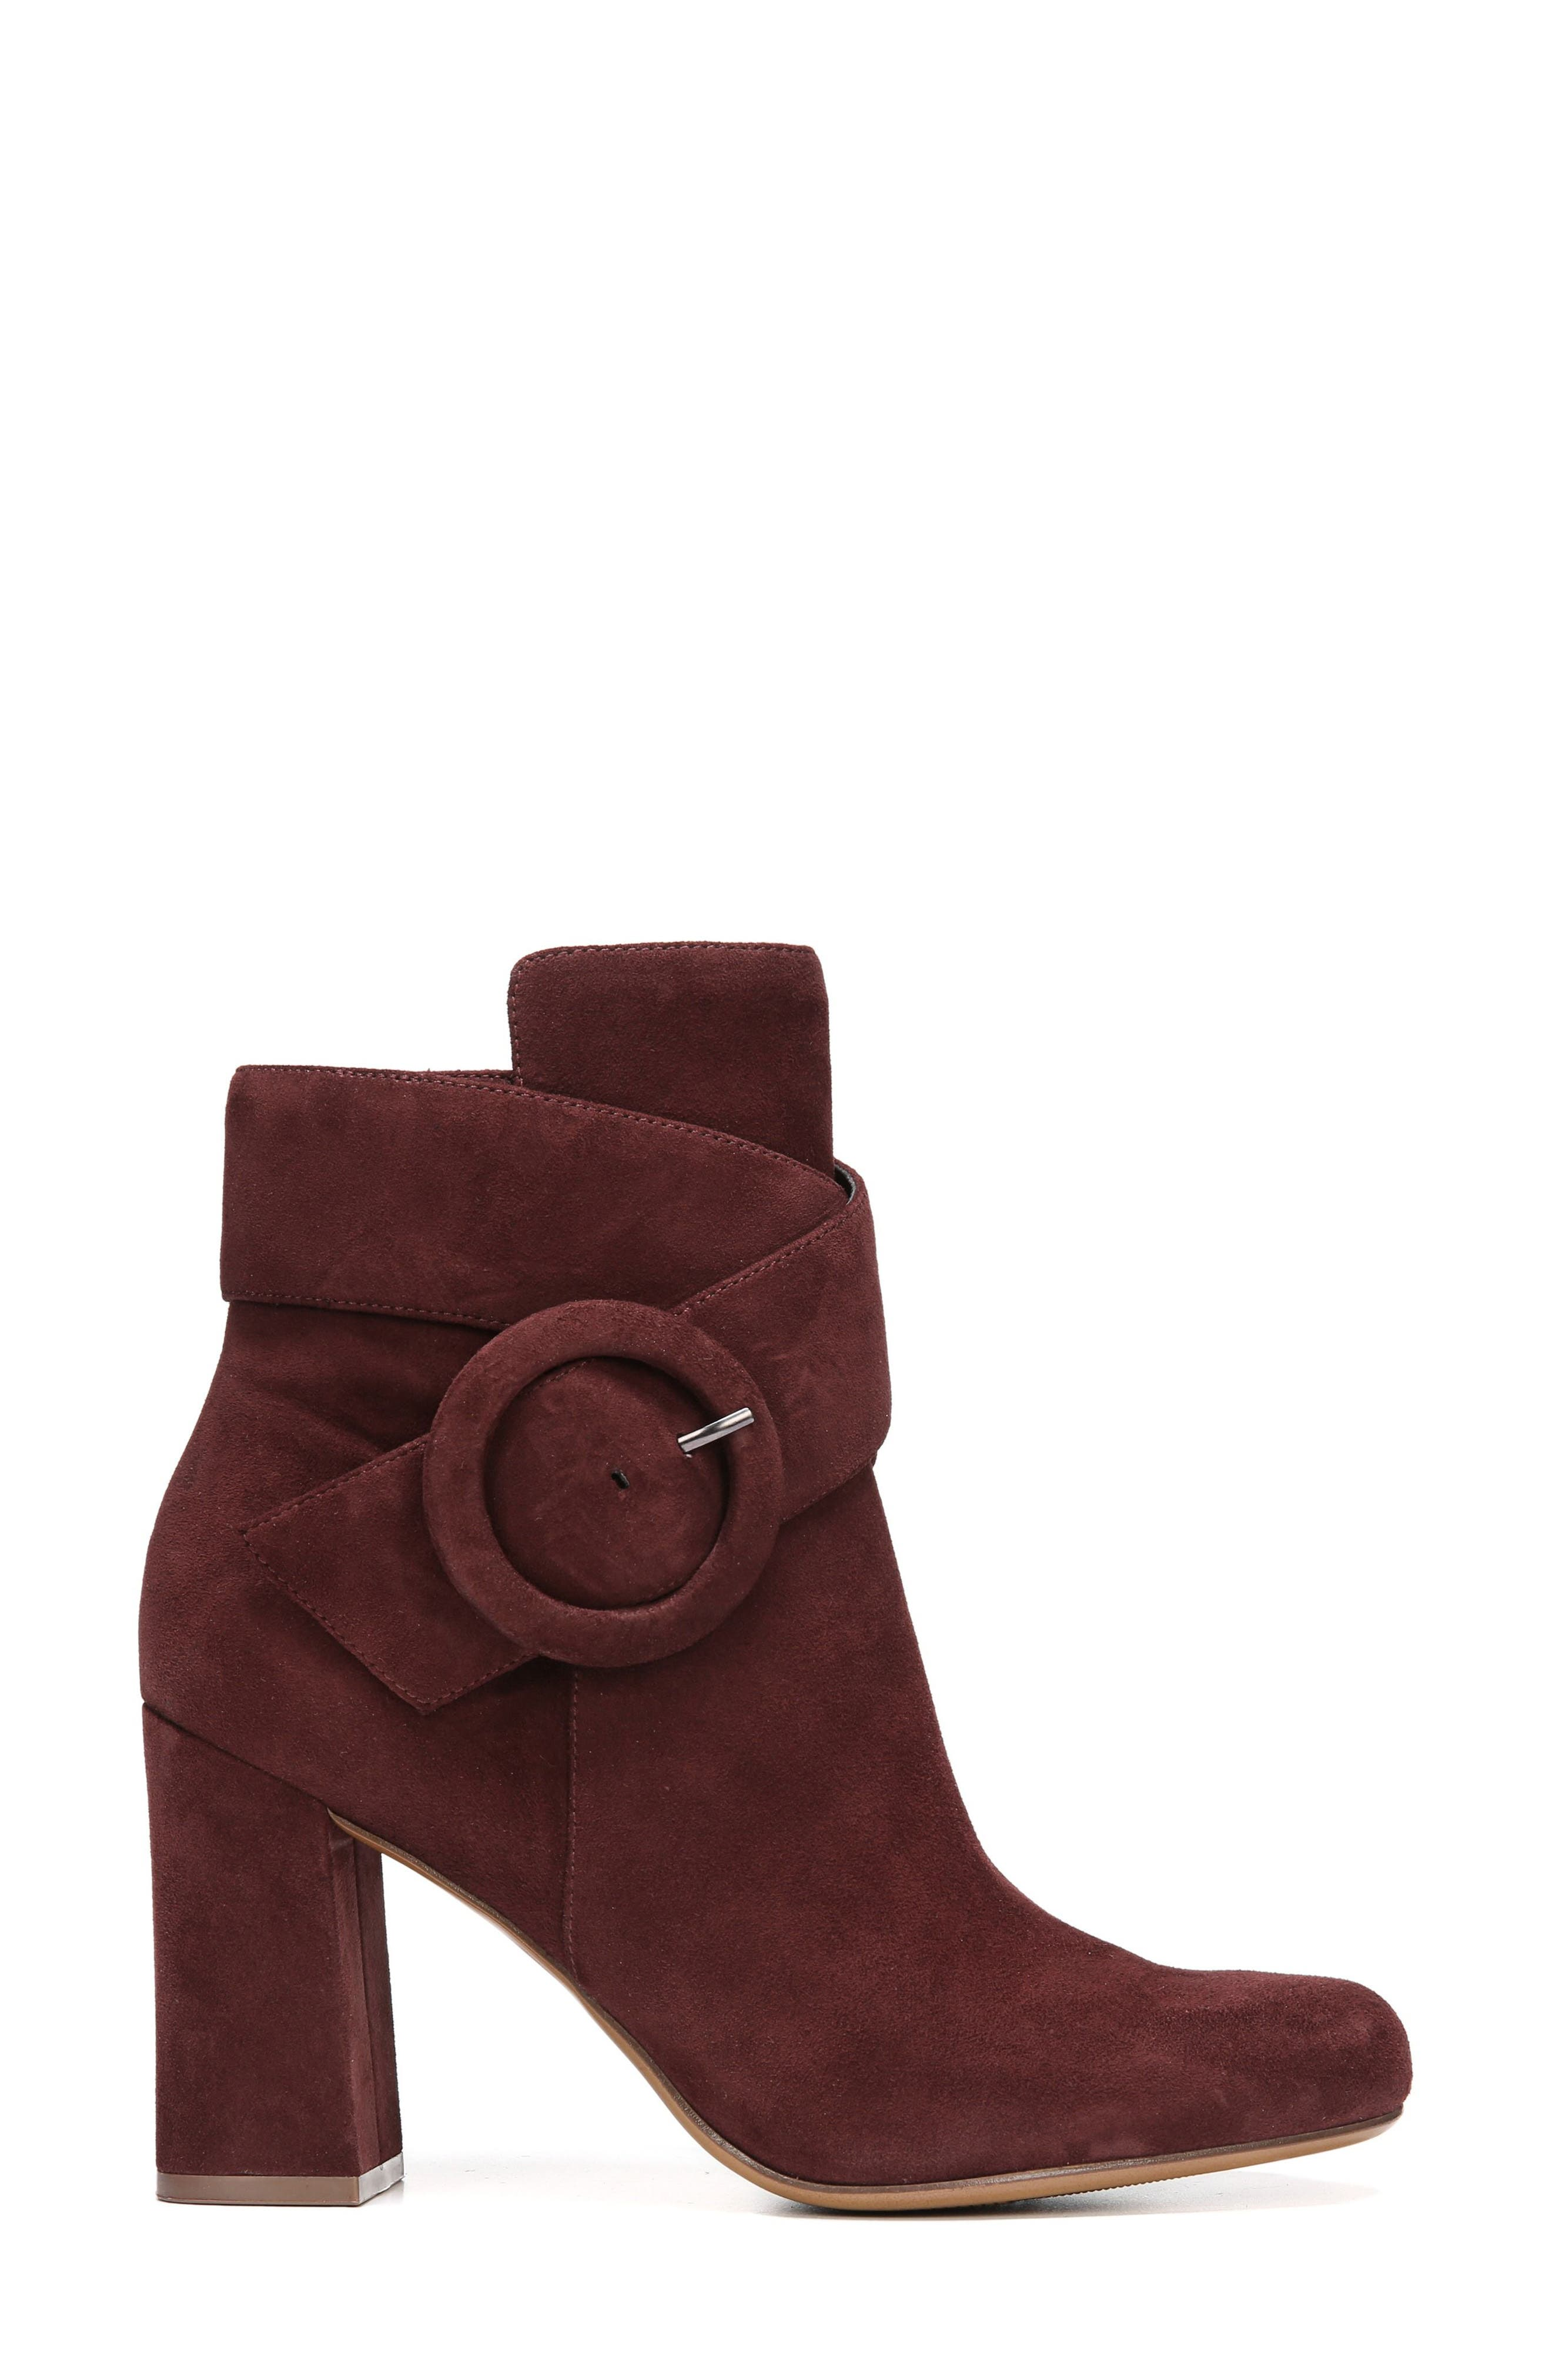 Nautralizer Rae Bootie,                             Alternate thumbnail 3, color,                             Bordo Leather